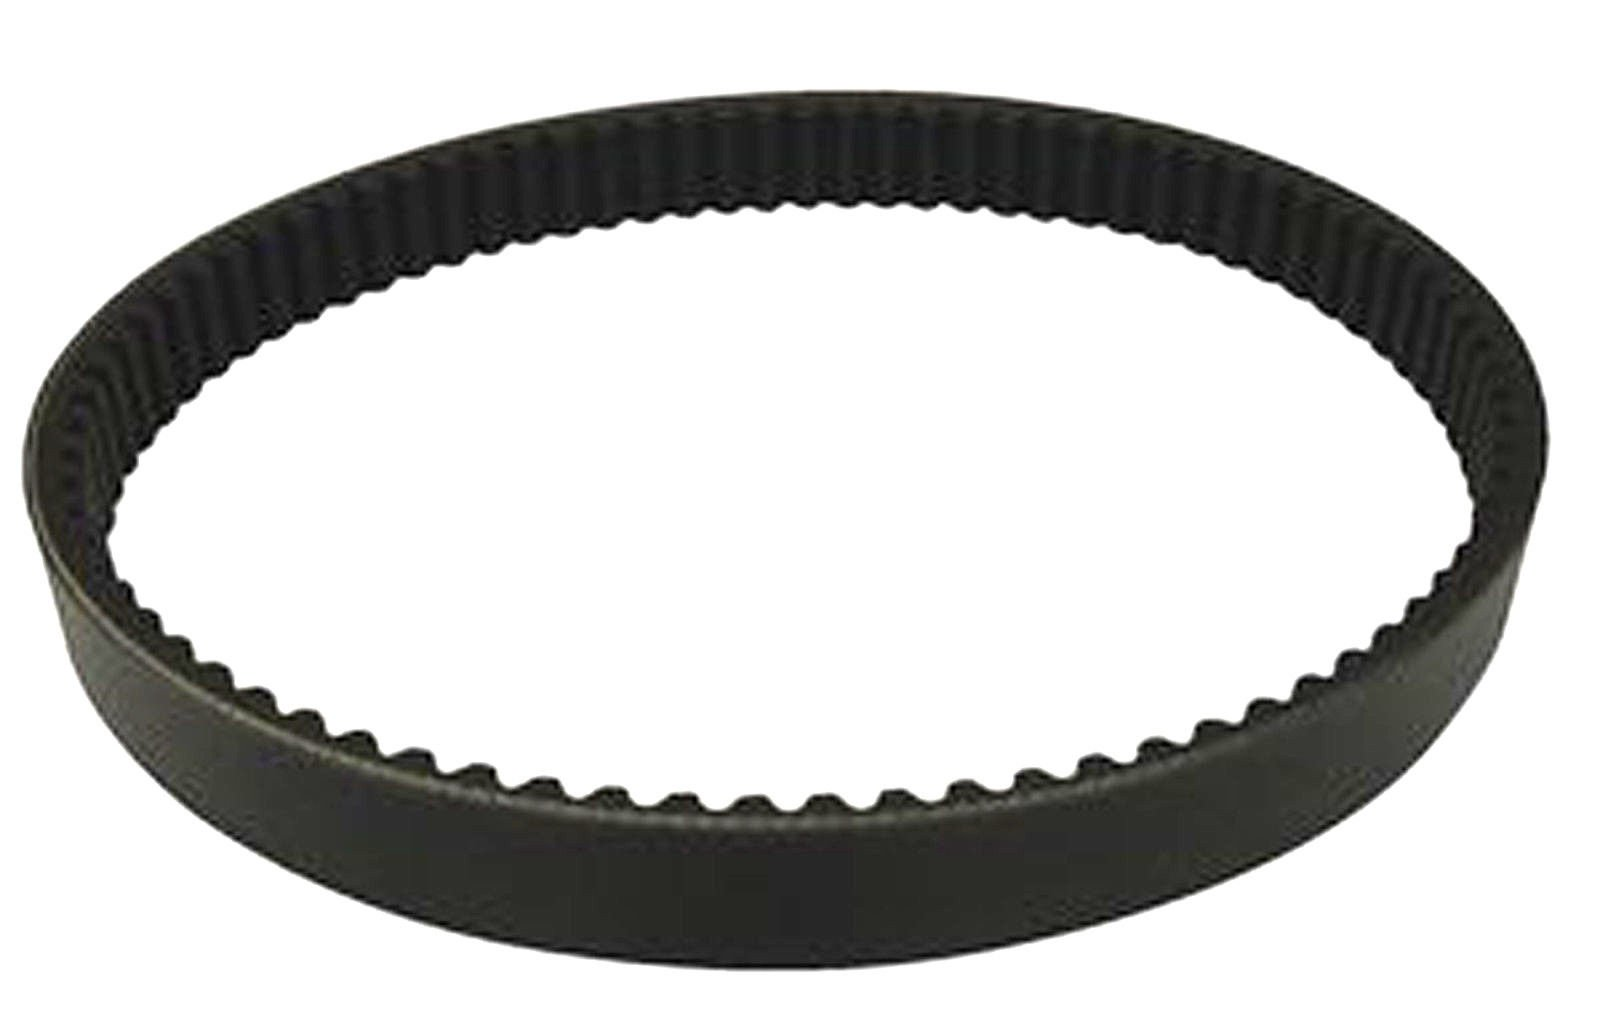 Top Quality New Replacement Belt for use with Clausing 15'' Drill Press Belt 051-028#WCAS by Bright Sun